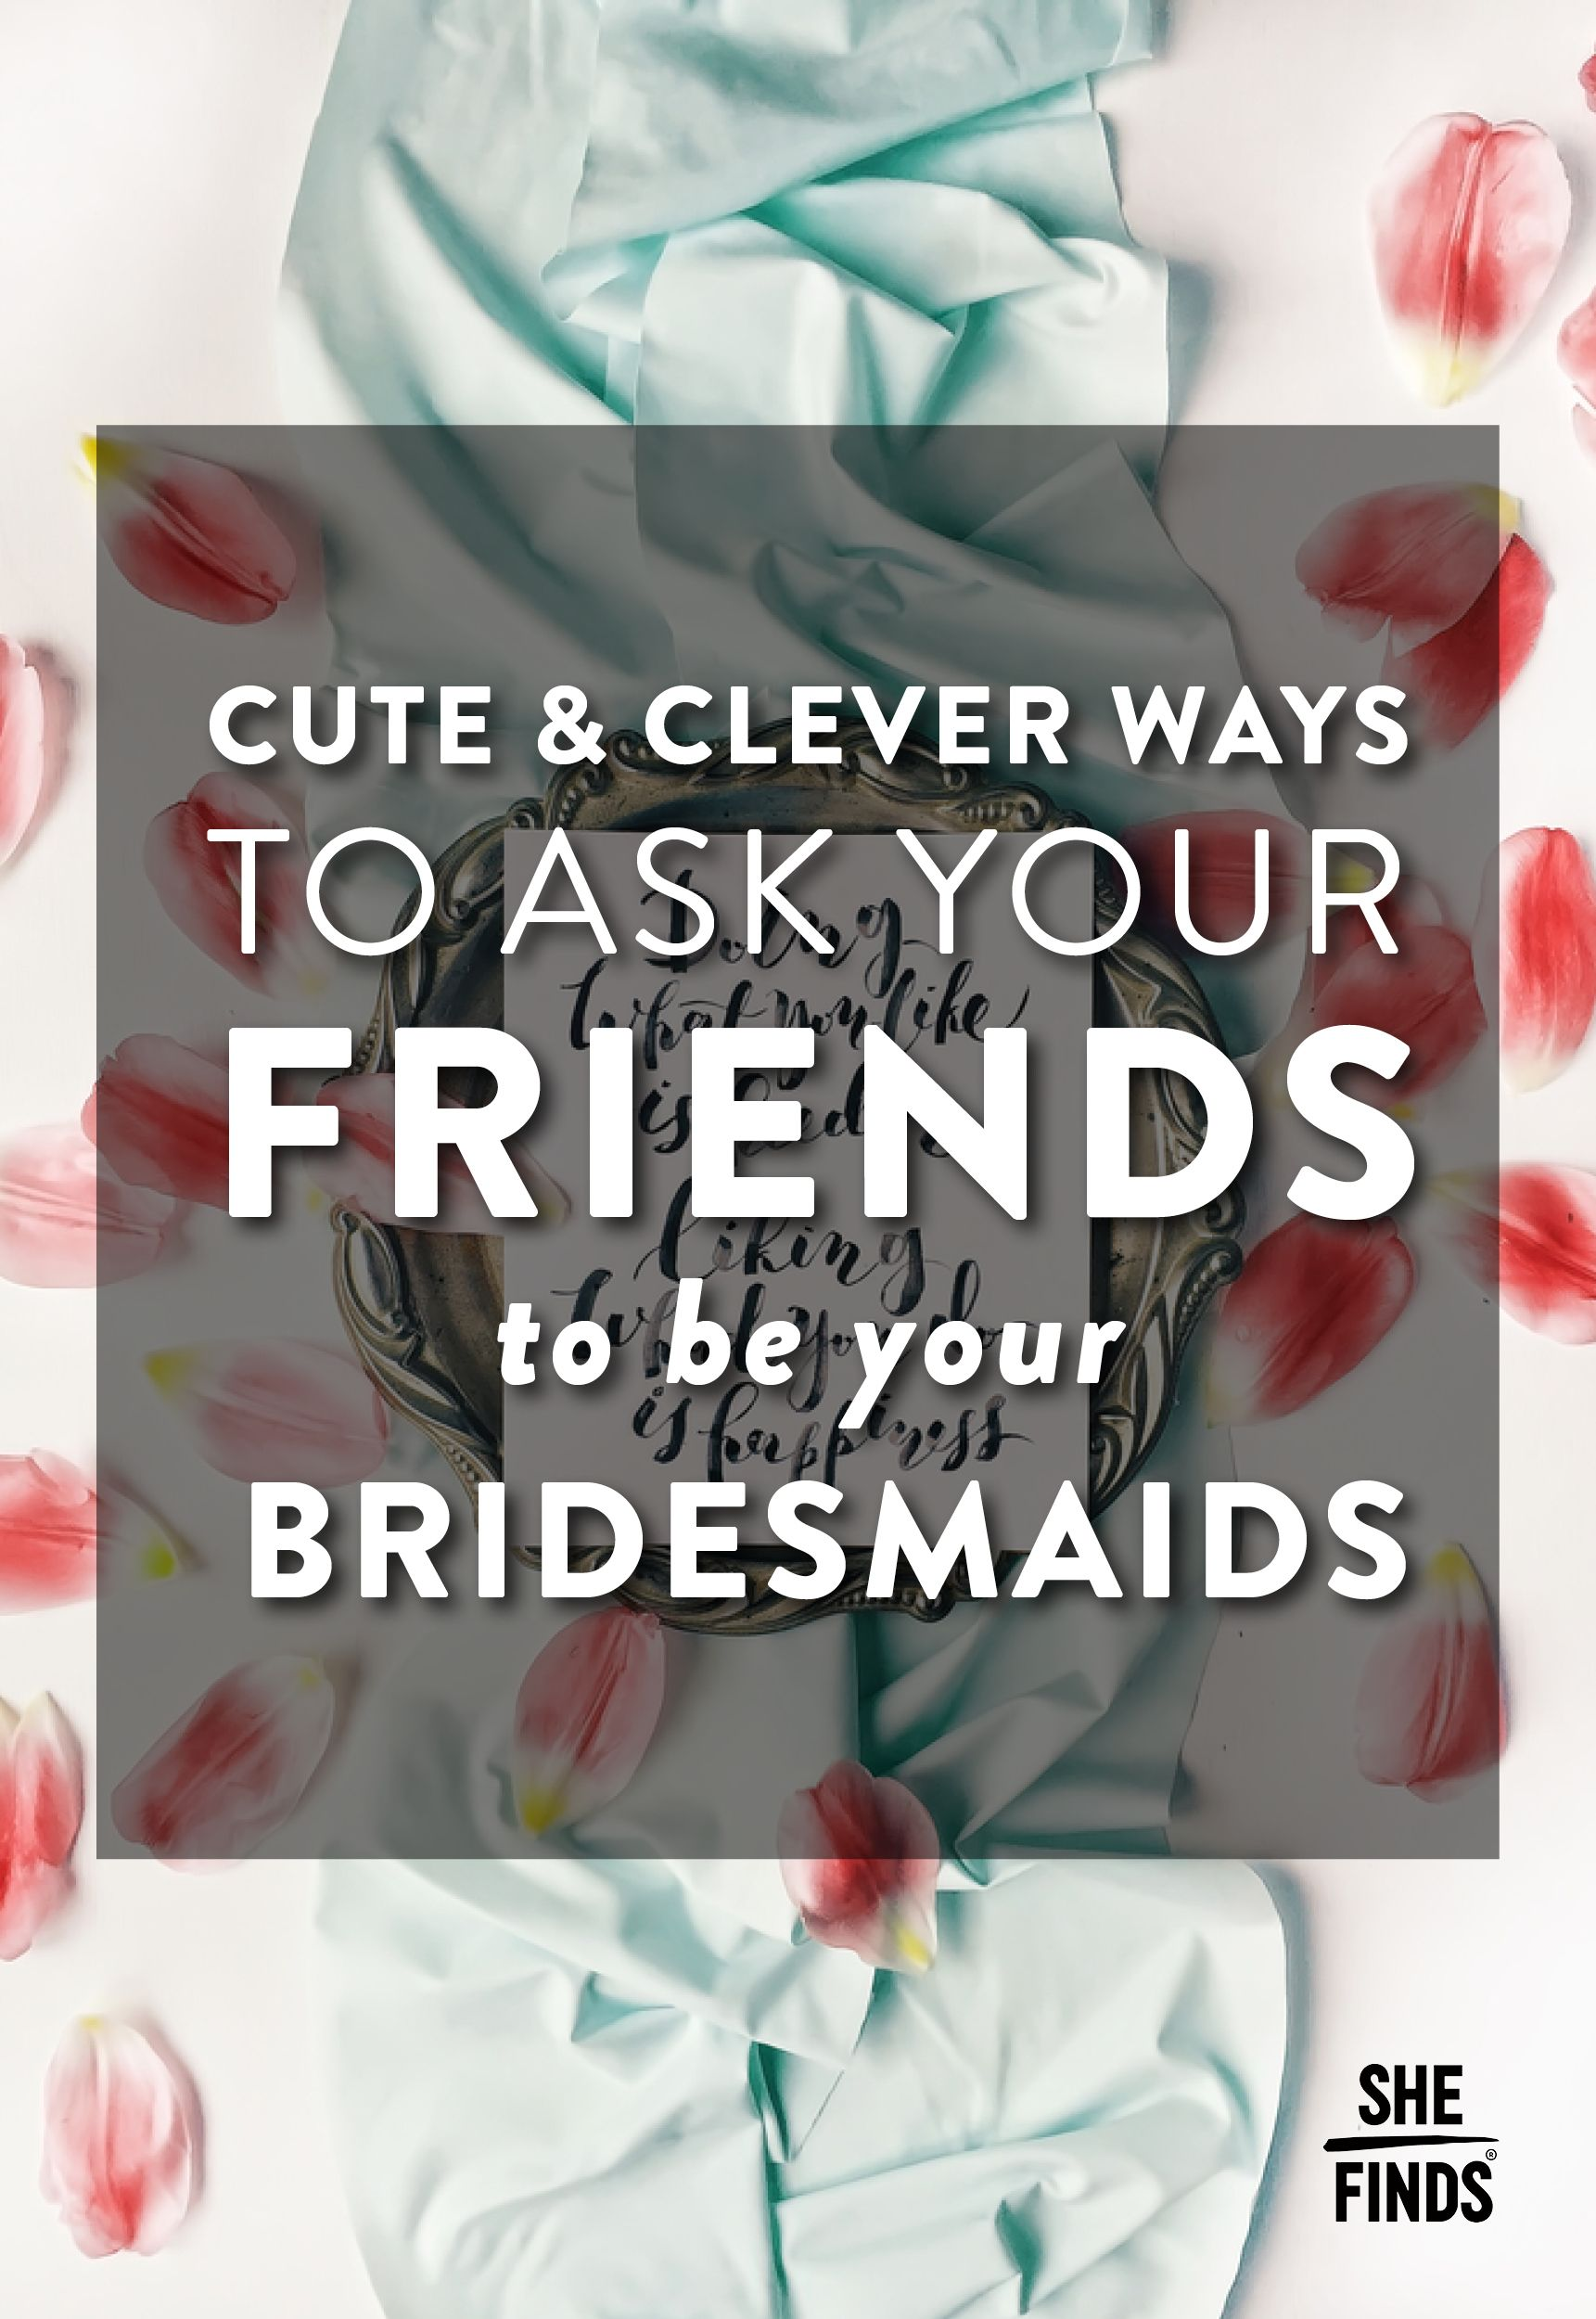 How to ask your friends to be bridesmaidscute ideas Life